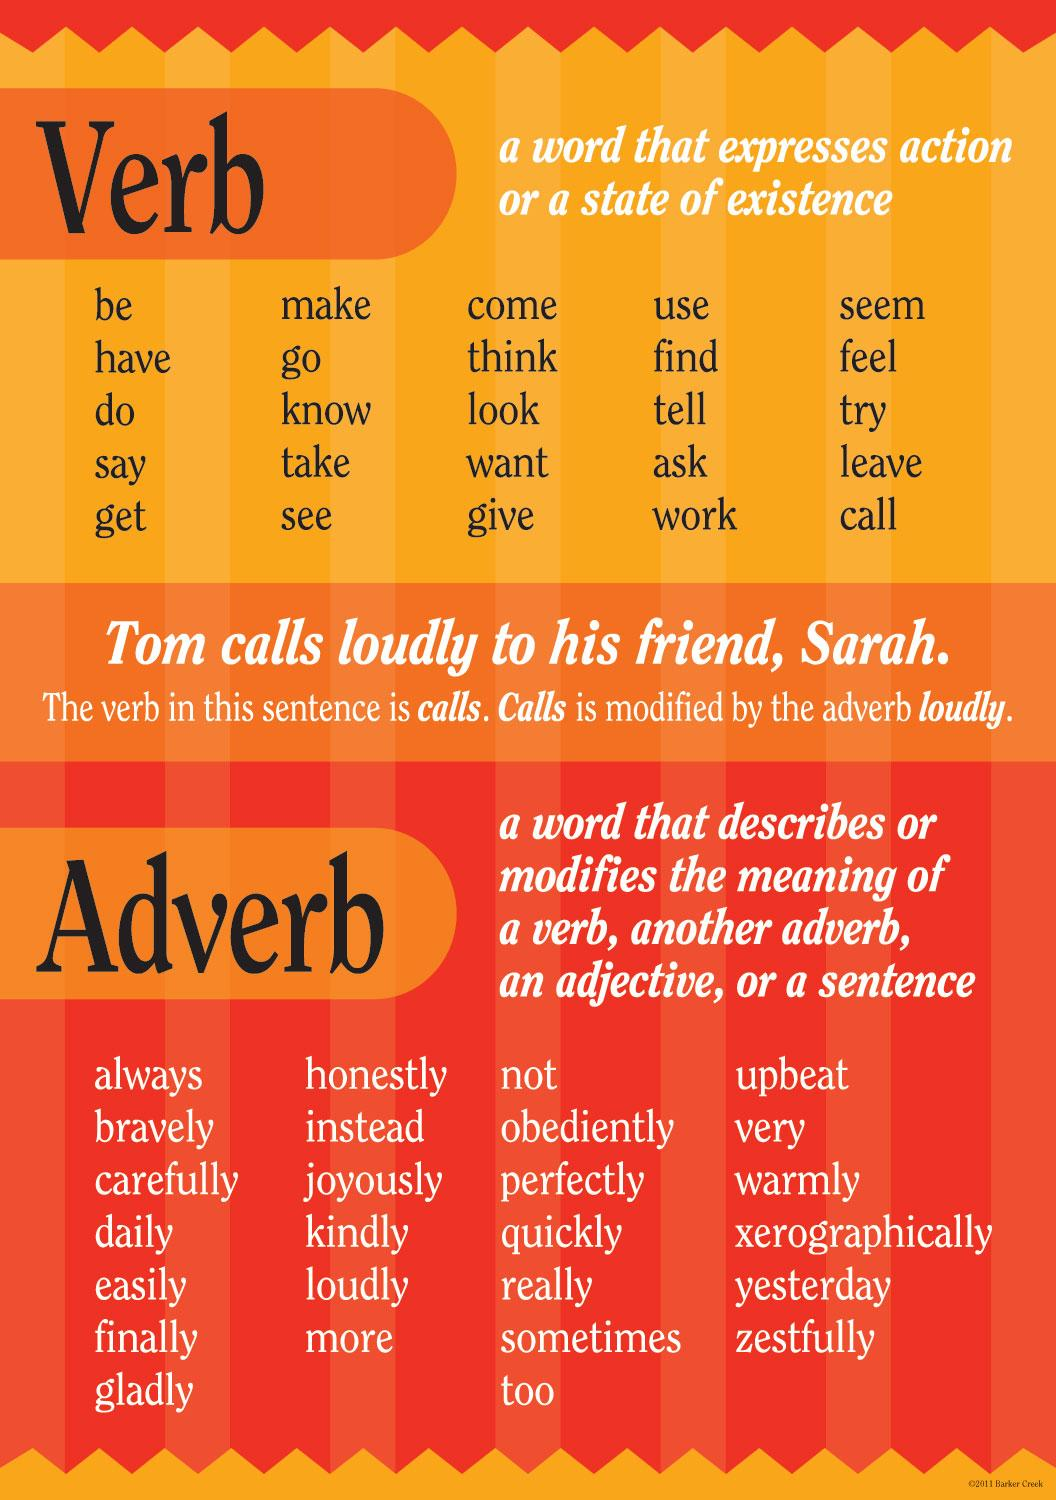 Learn synonyms and antonyms